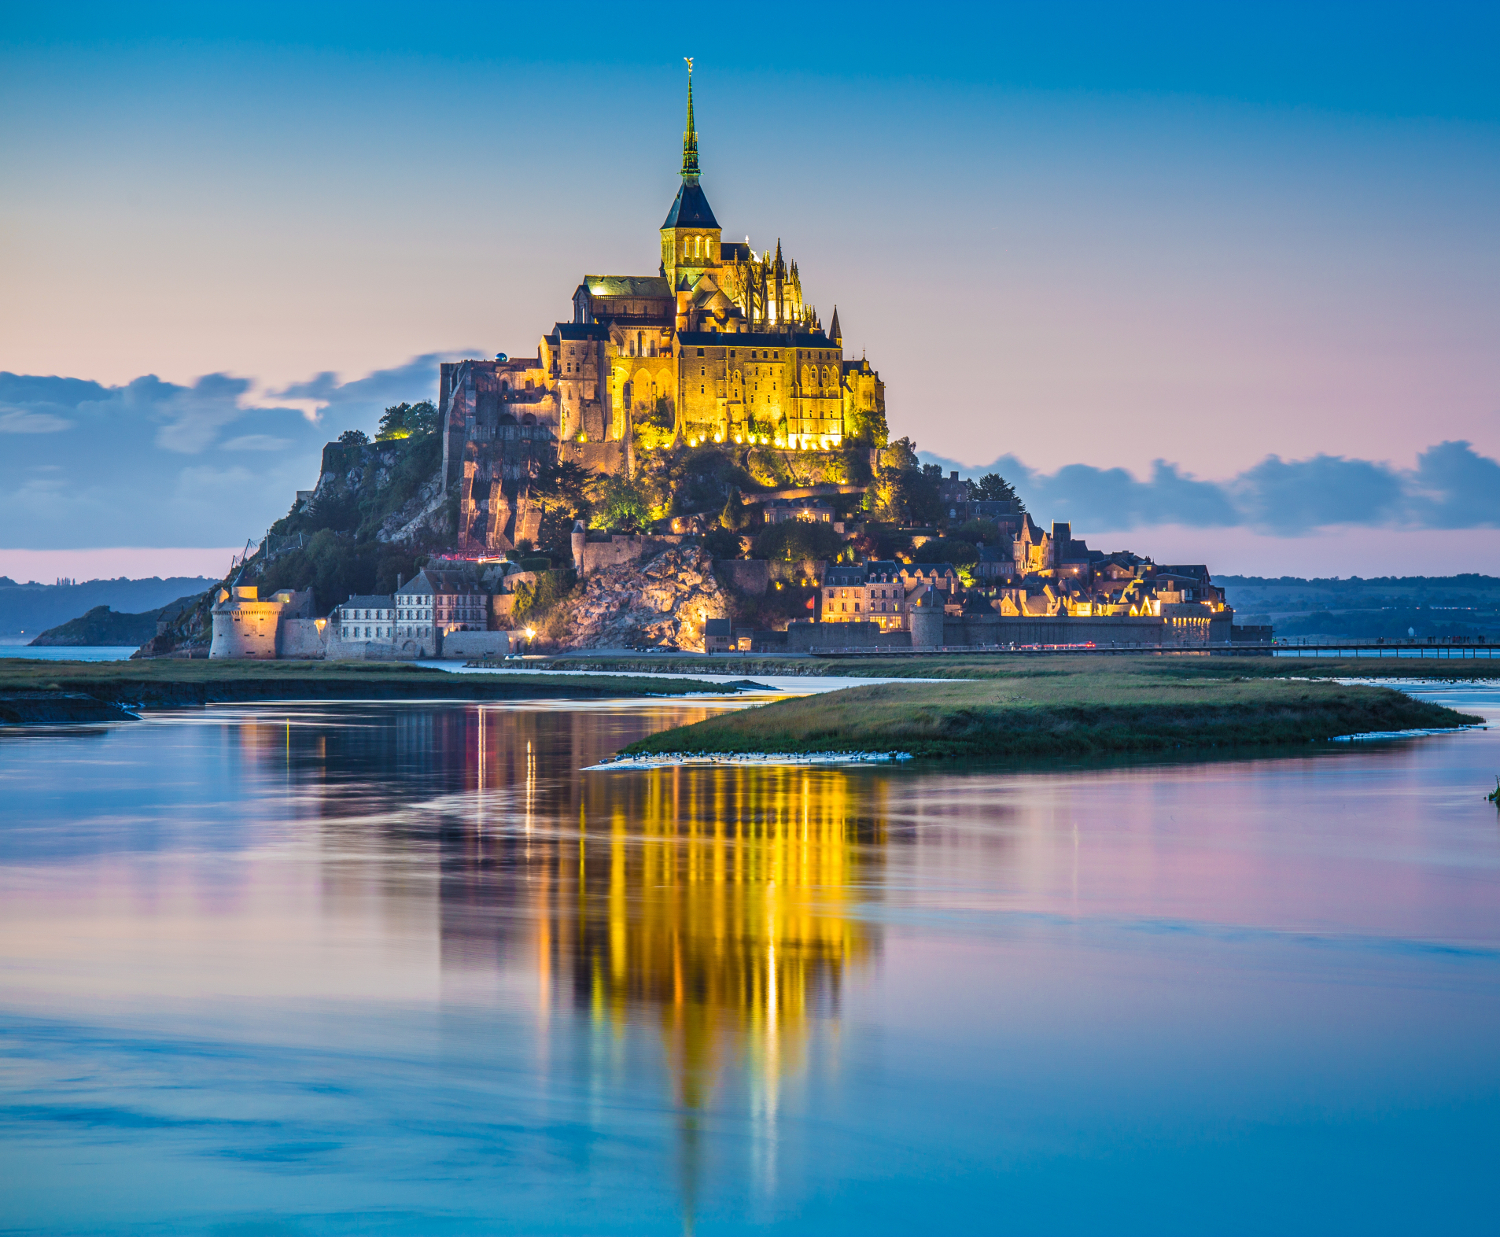 Le Mont Saint-Michel at dusk #France, #travel #best #photos and #places